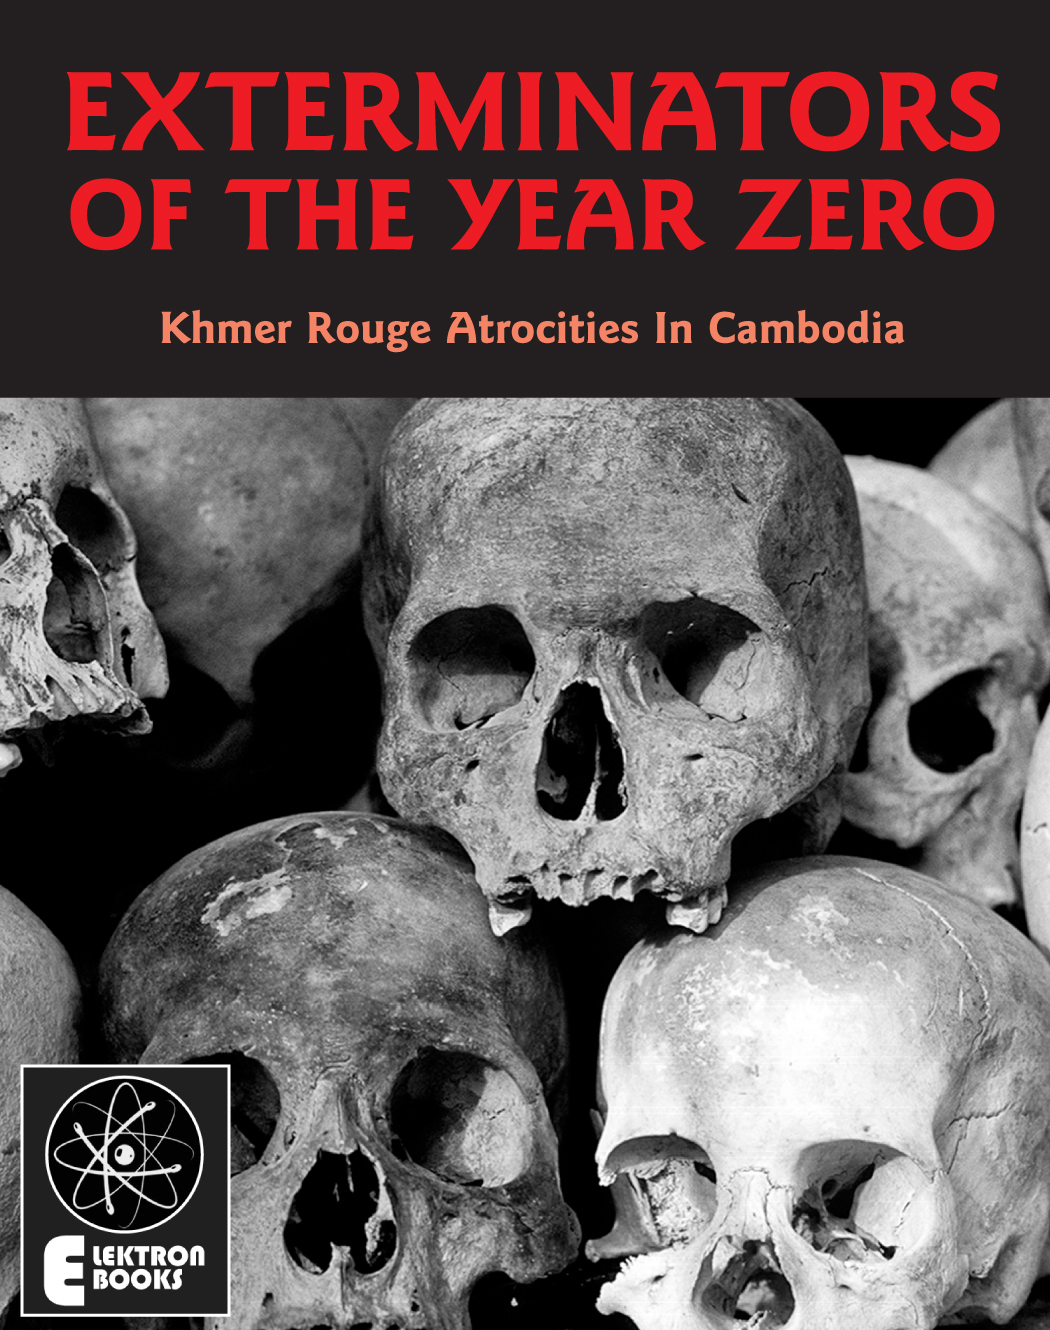 Exterminators Of The Year Zero: Khmer Rouge Atrocities In Cambodia